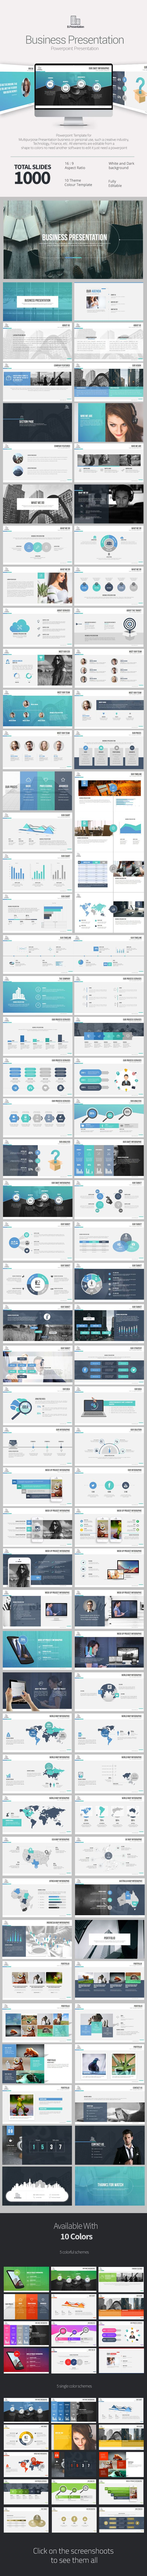 Business Presentation  Business Presentation Templates Business